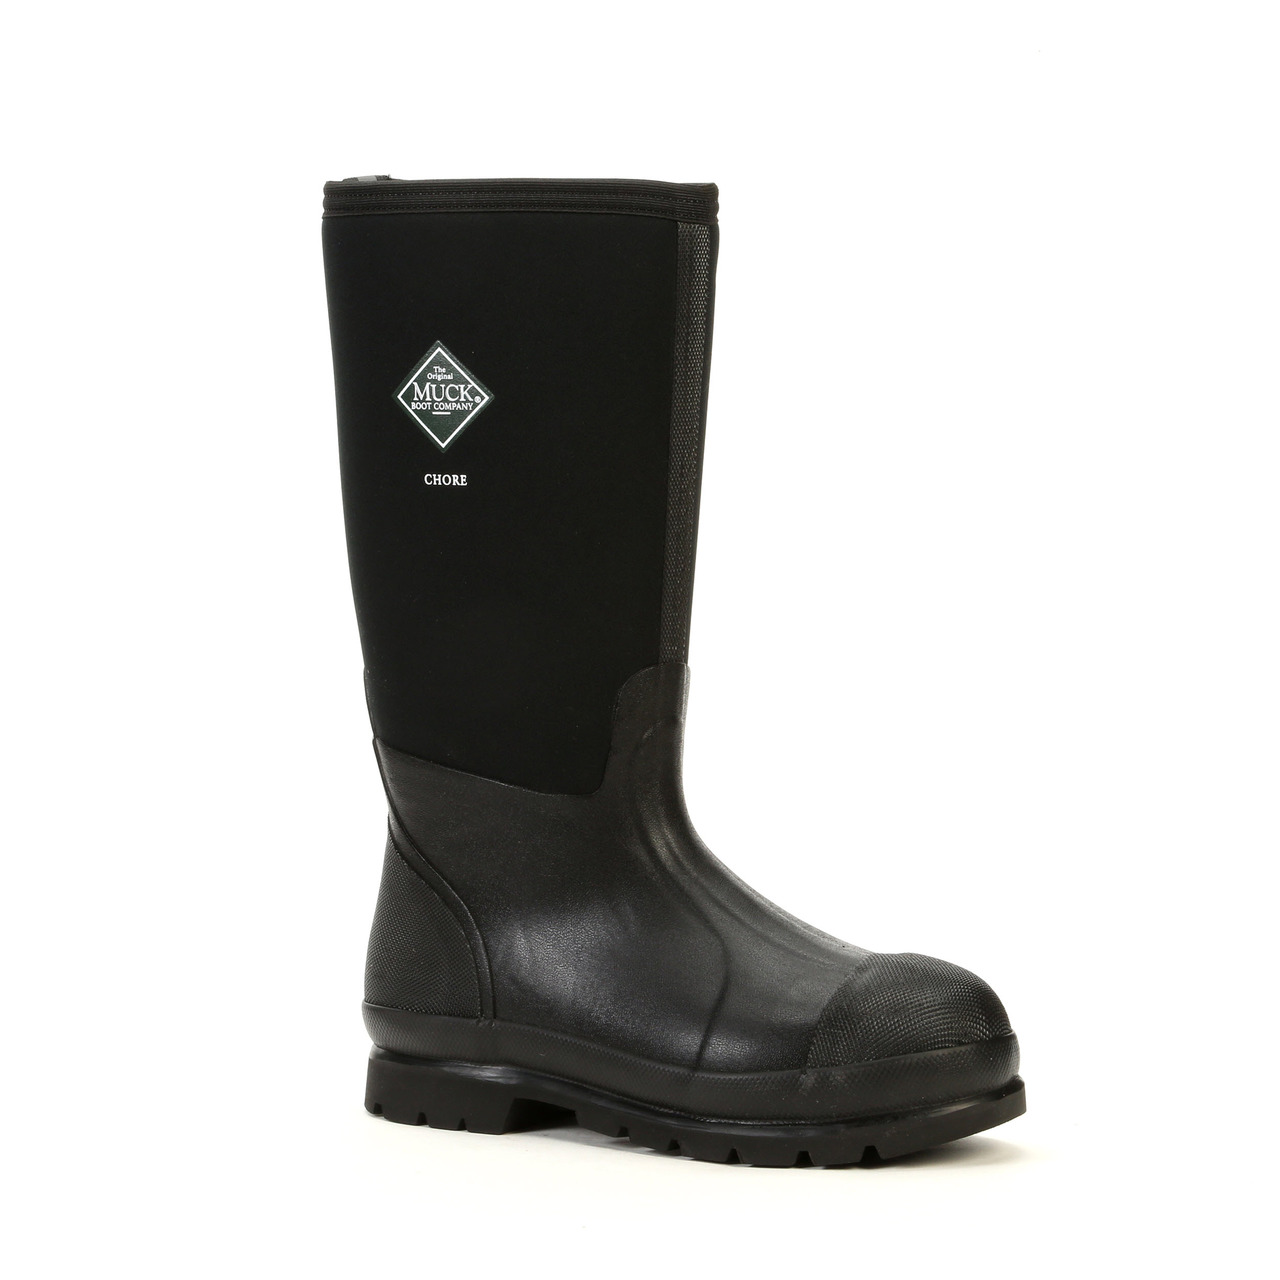 Farm & Ranch All Weather Boots | Muck Boots USA